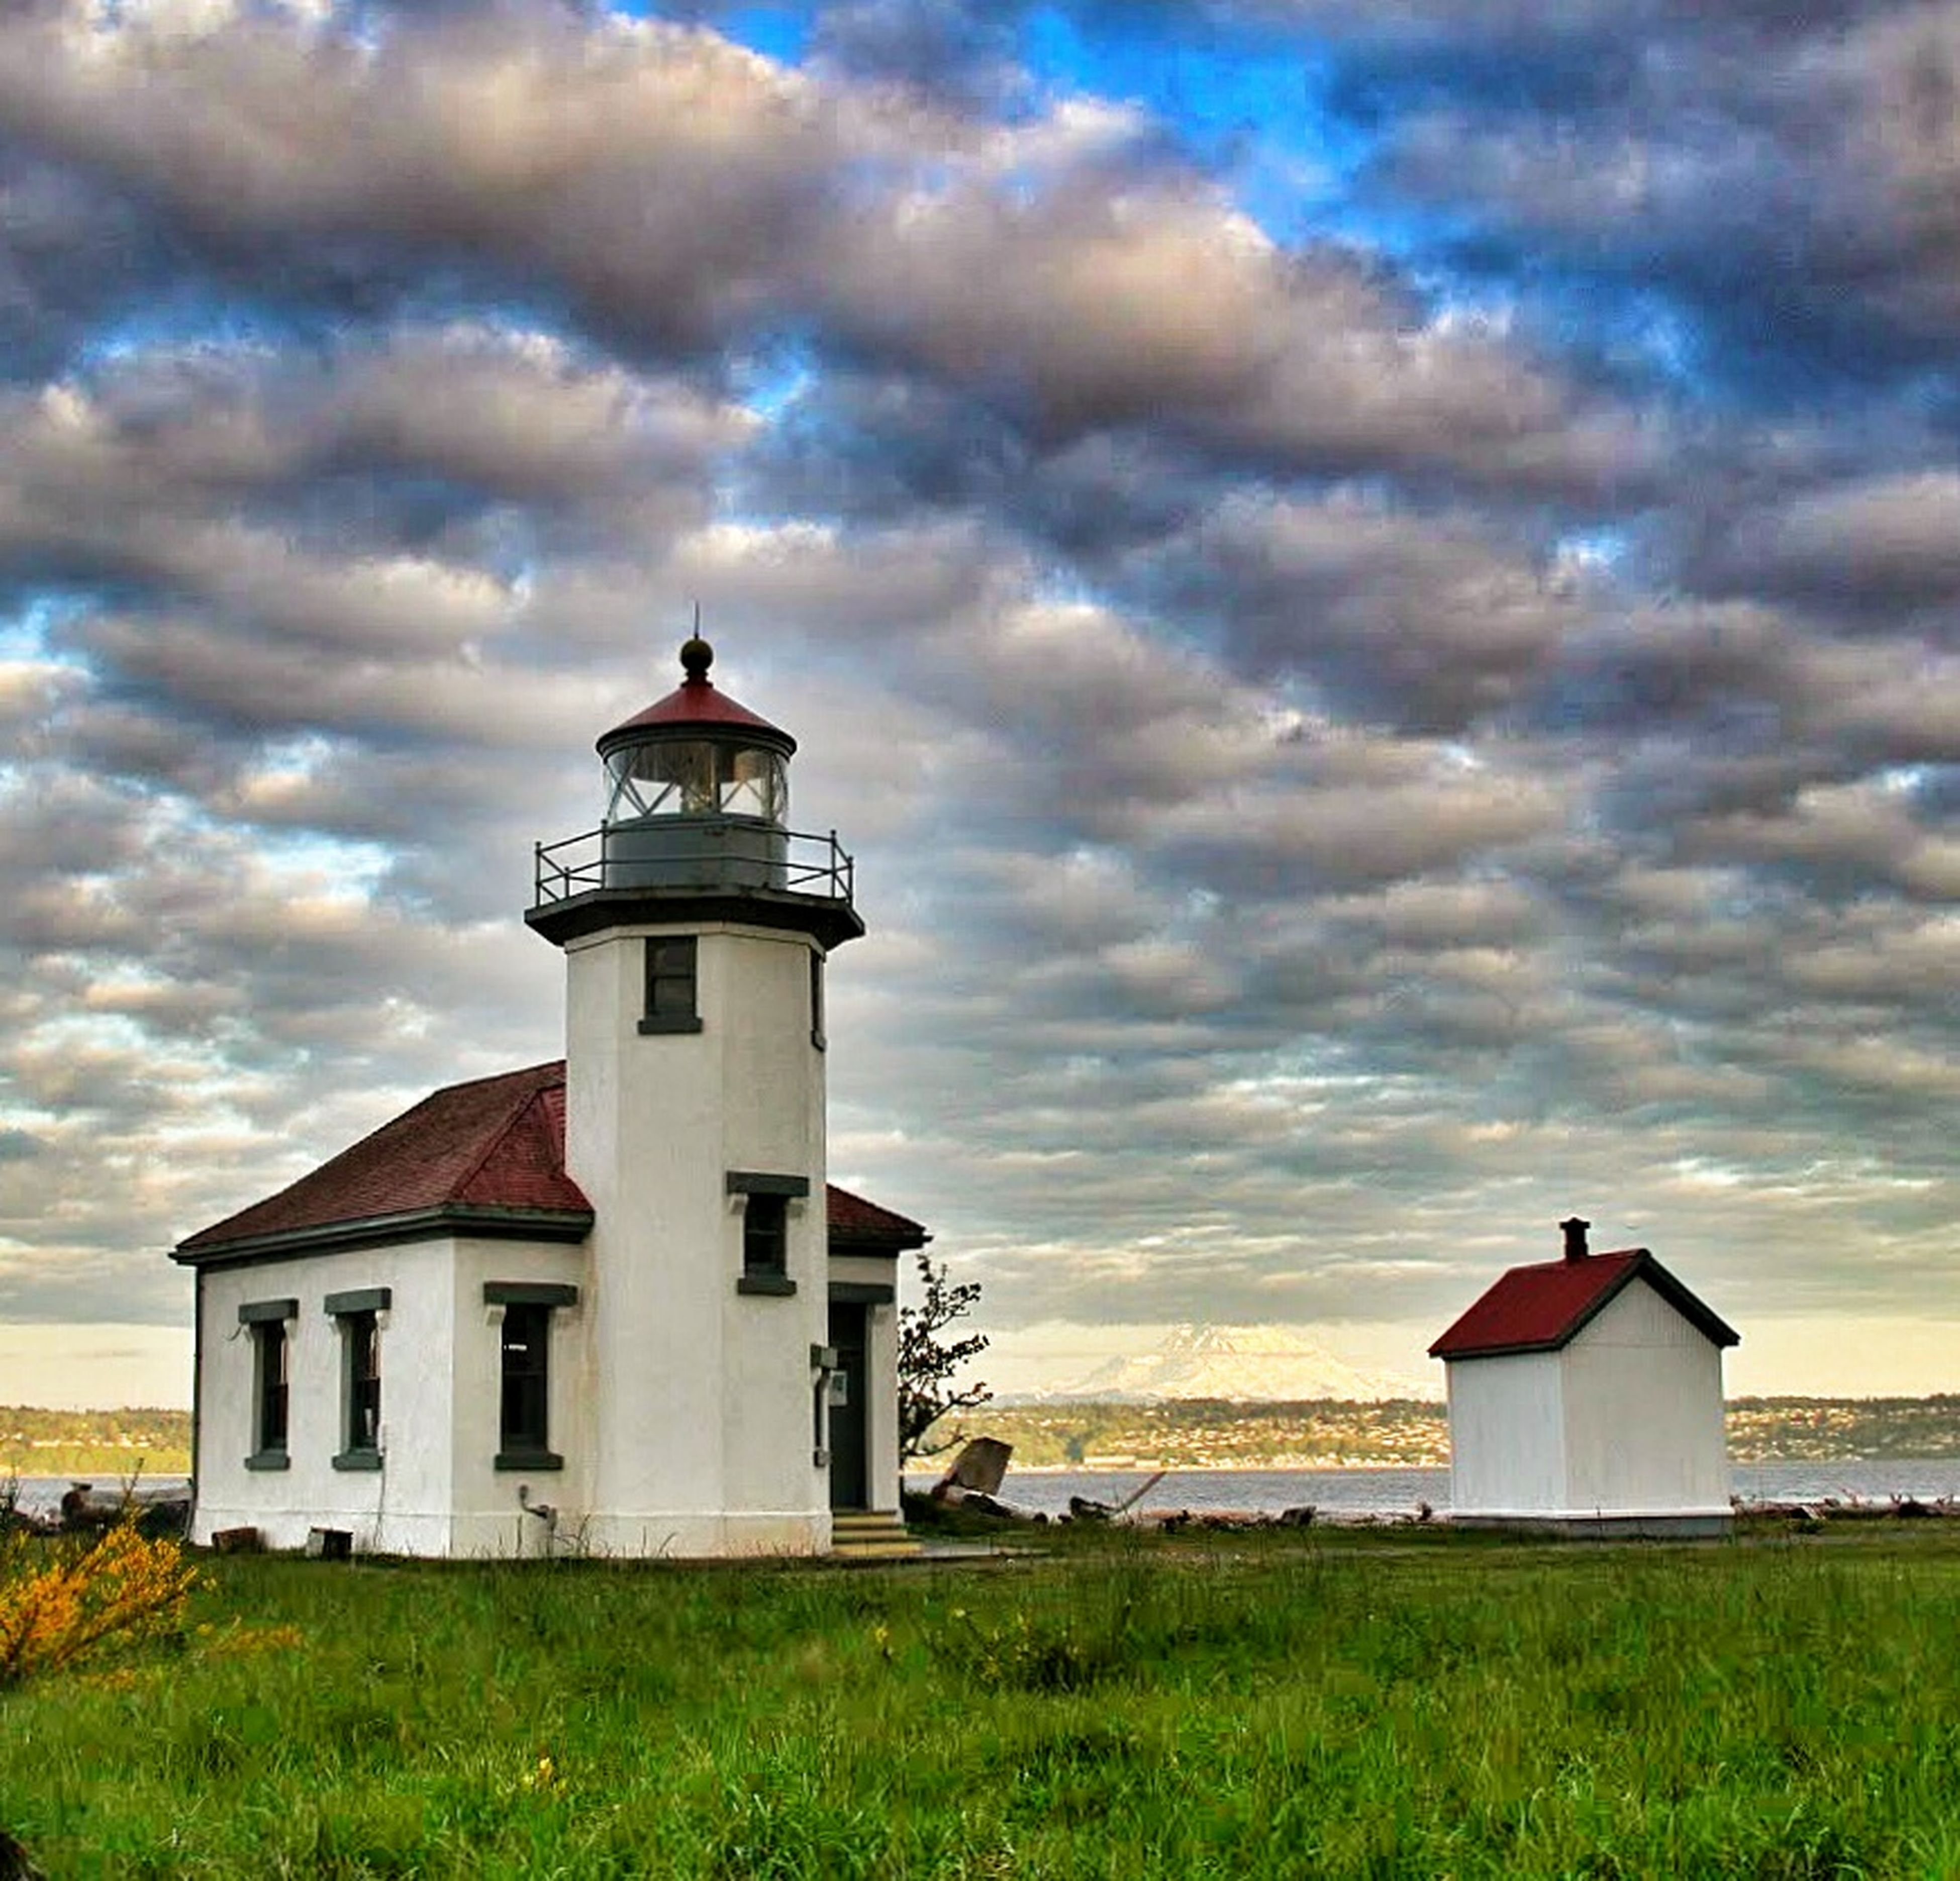 lighthouse, architecture, building exterior, built structure, sky, cloud - sky, grass, guidance, cloudy, protection, security, safety, field, cloud, direction, house, nature, landscape, tranquil scene, tower